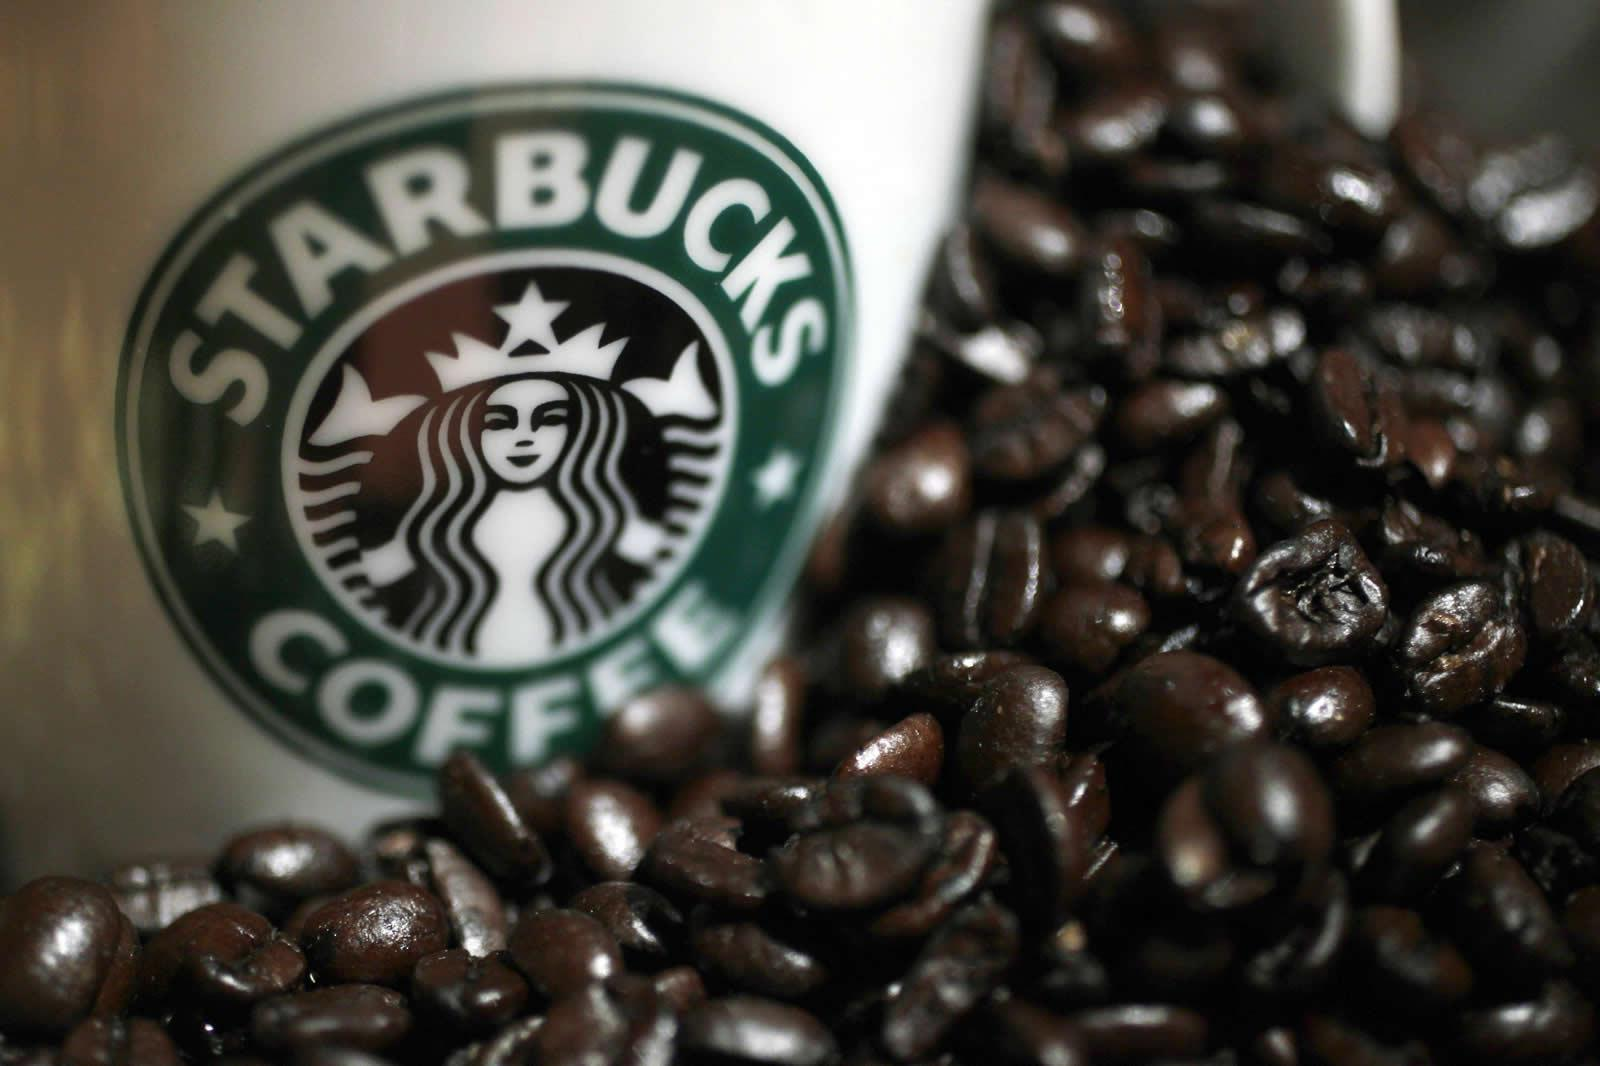 Bring home your Starbucks® favorites―rich brewed coffee and perfect shots of espresso.